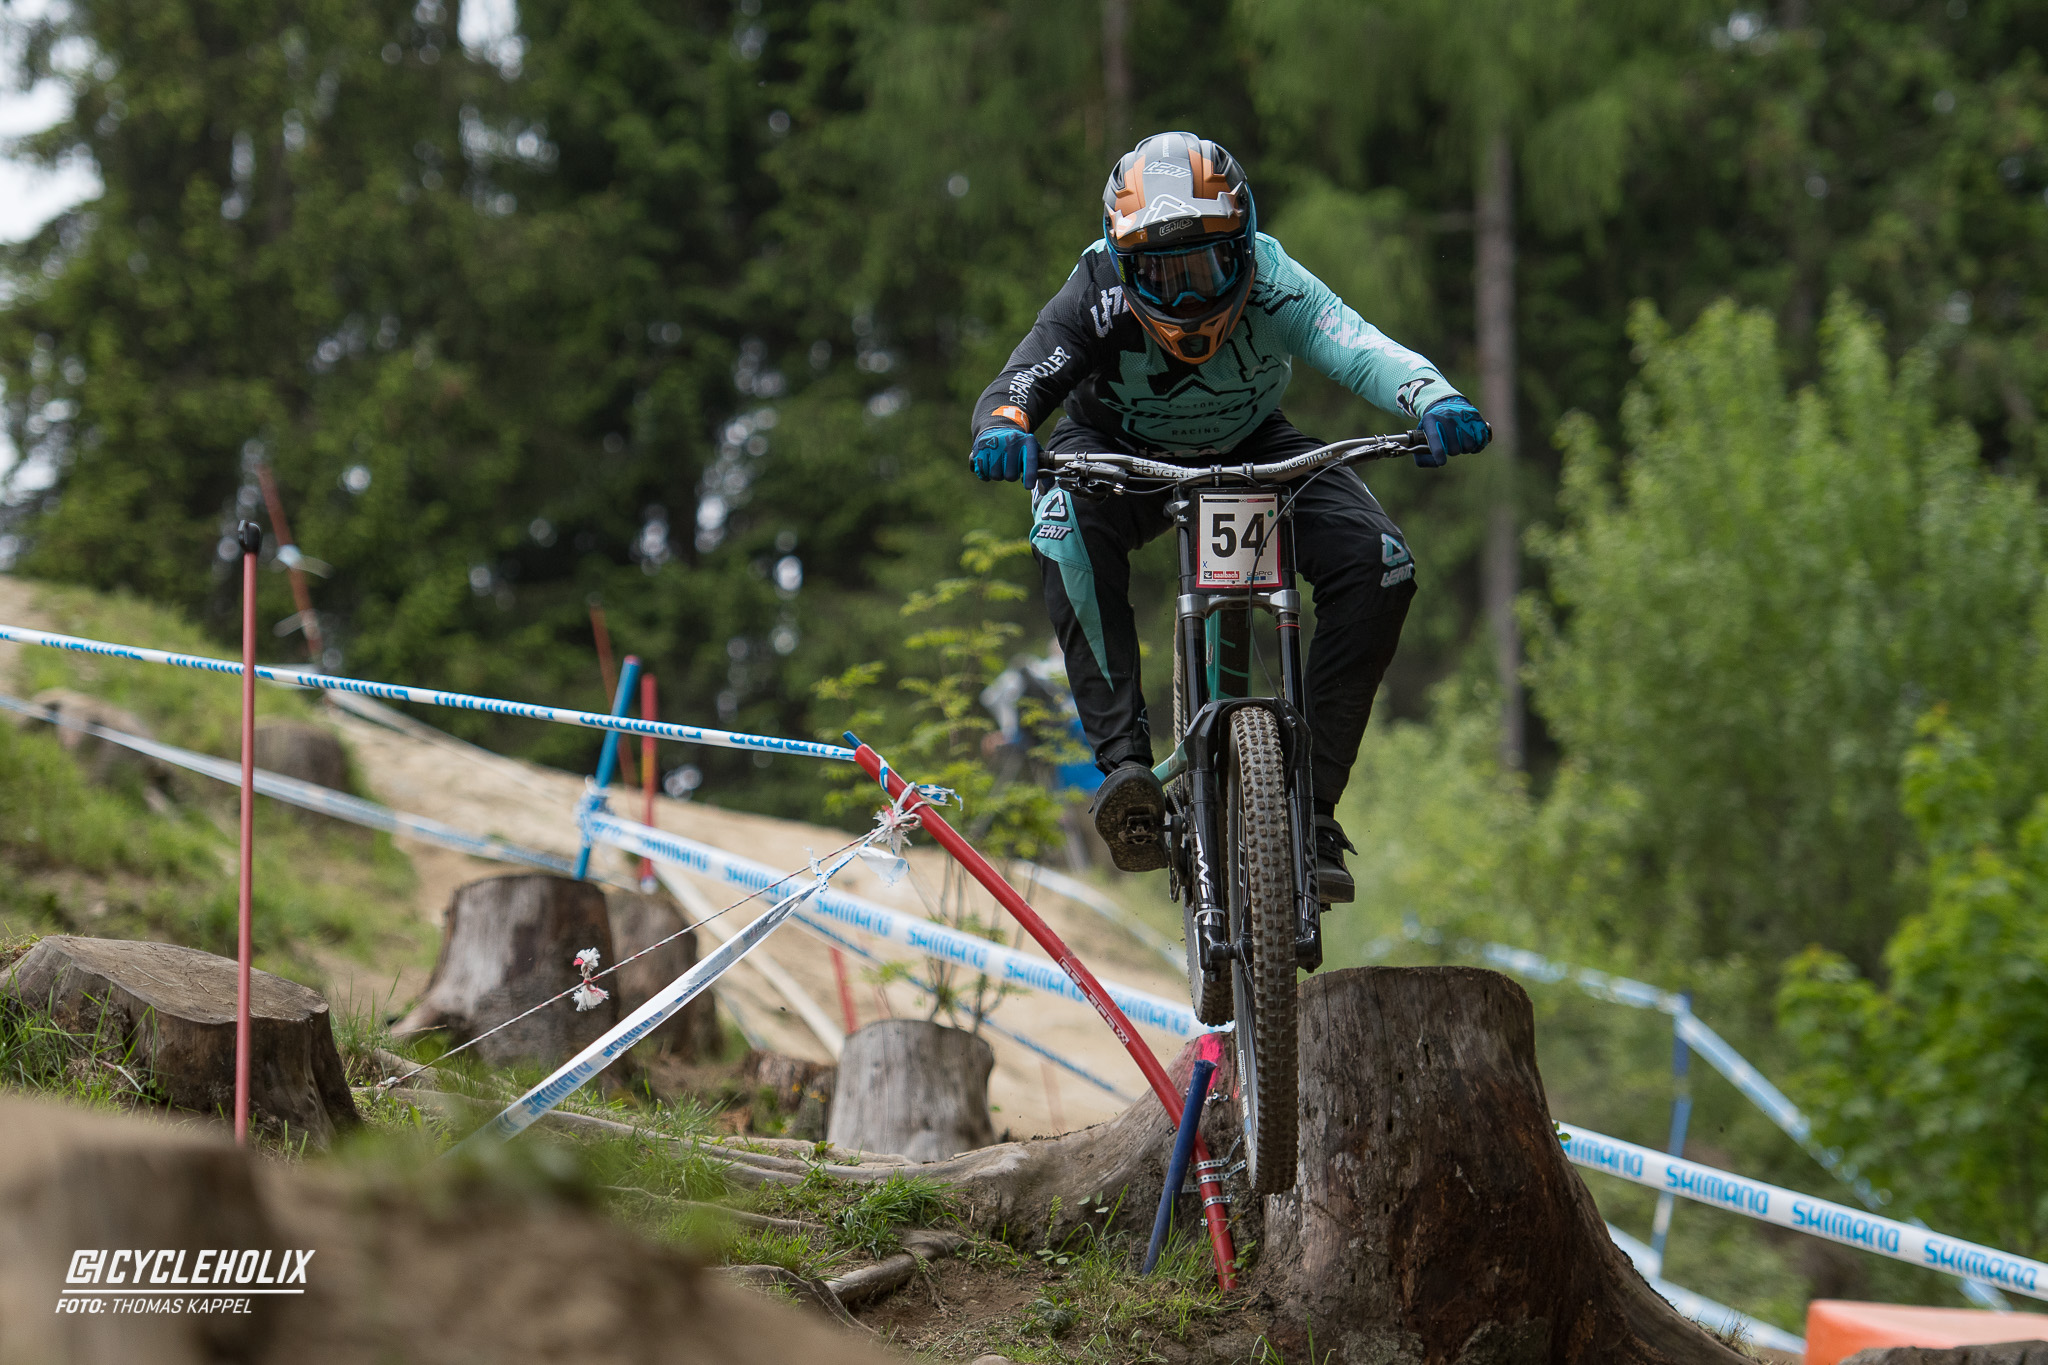 2019 Downhill Worldcup Leogang Finale Action QA 16